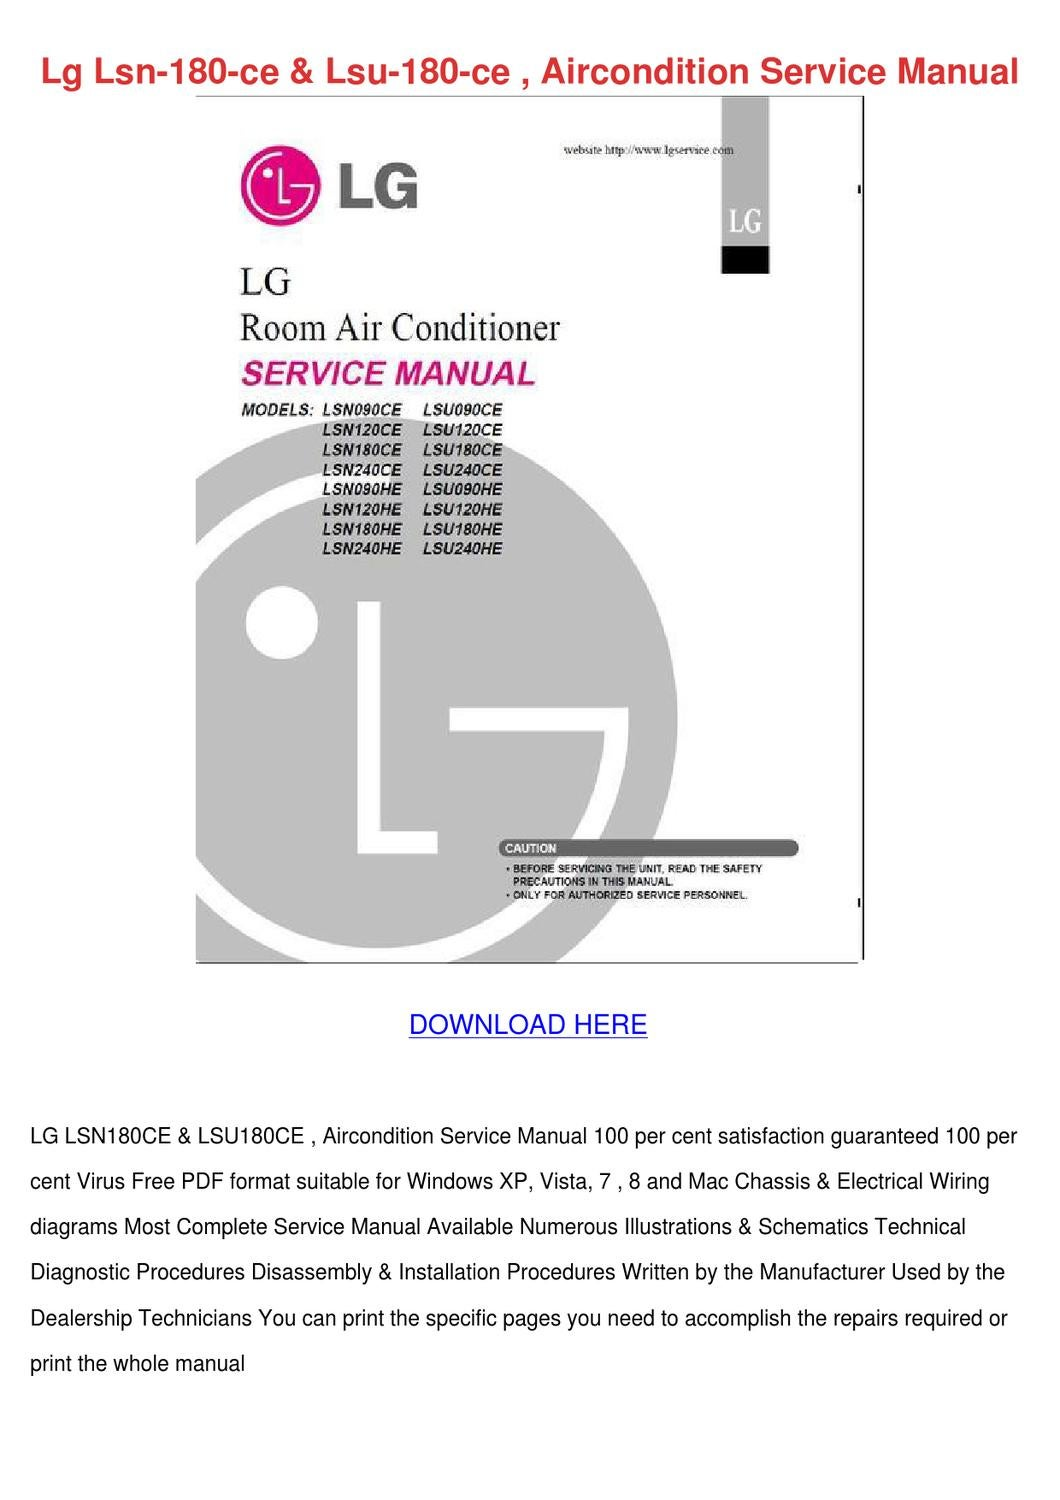 Lg Lsn 180 Ce Lsu 180 Ce Aircondition Service by KlausJeffers - issuu